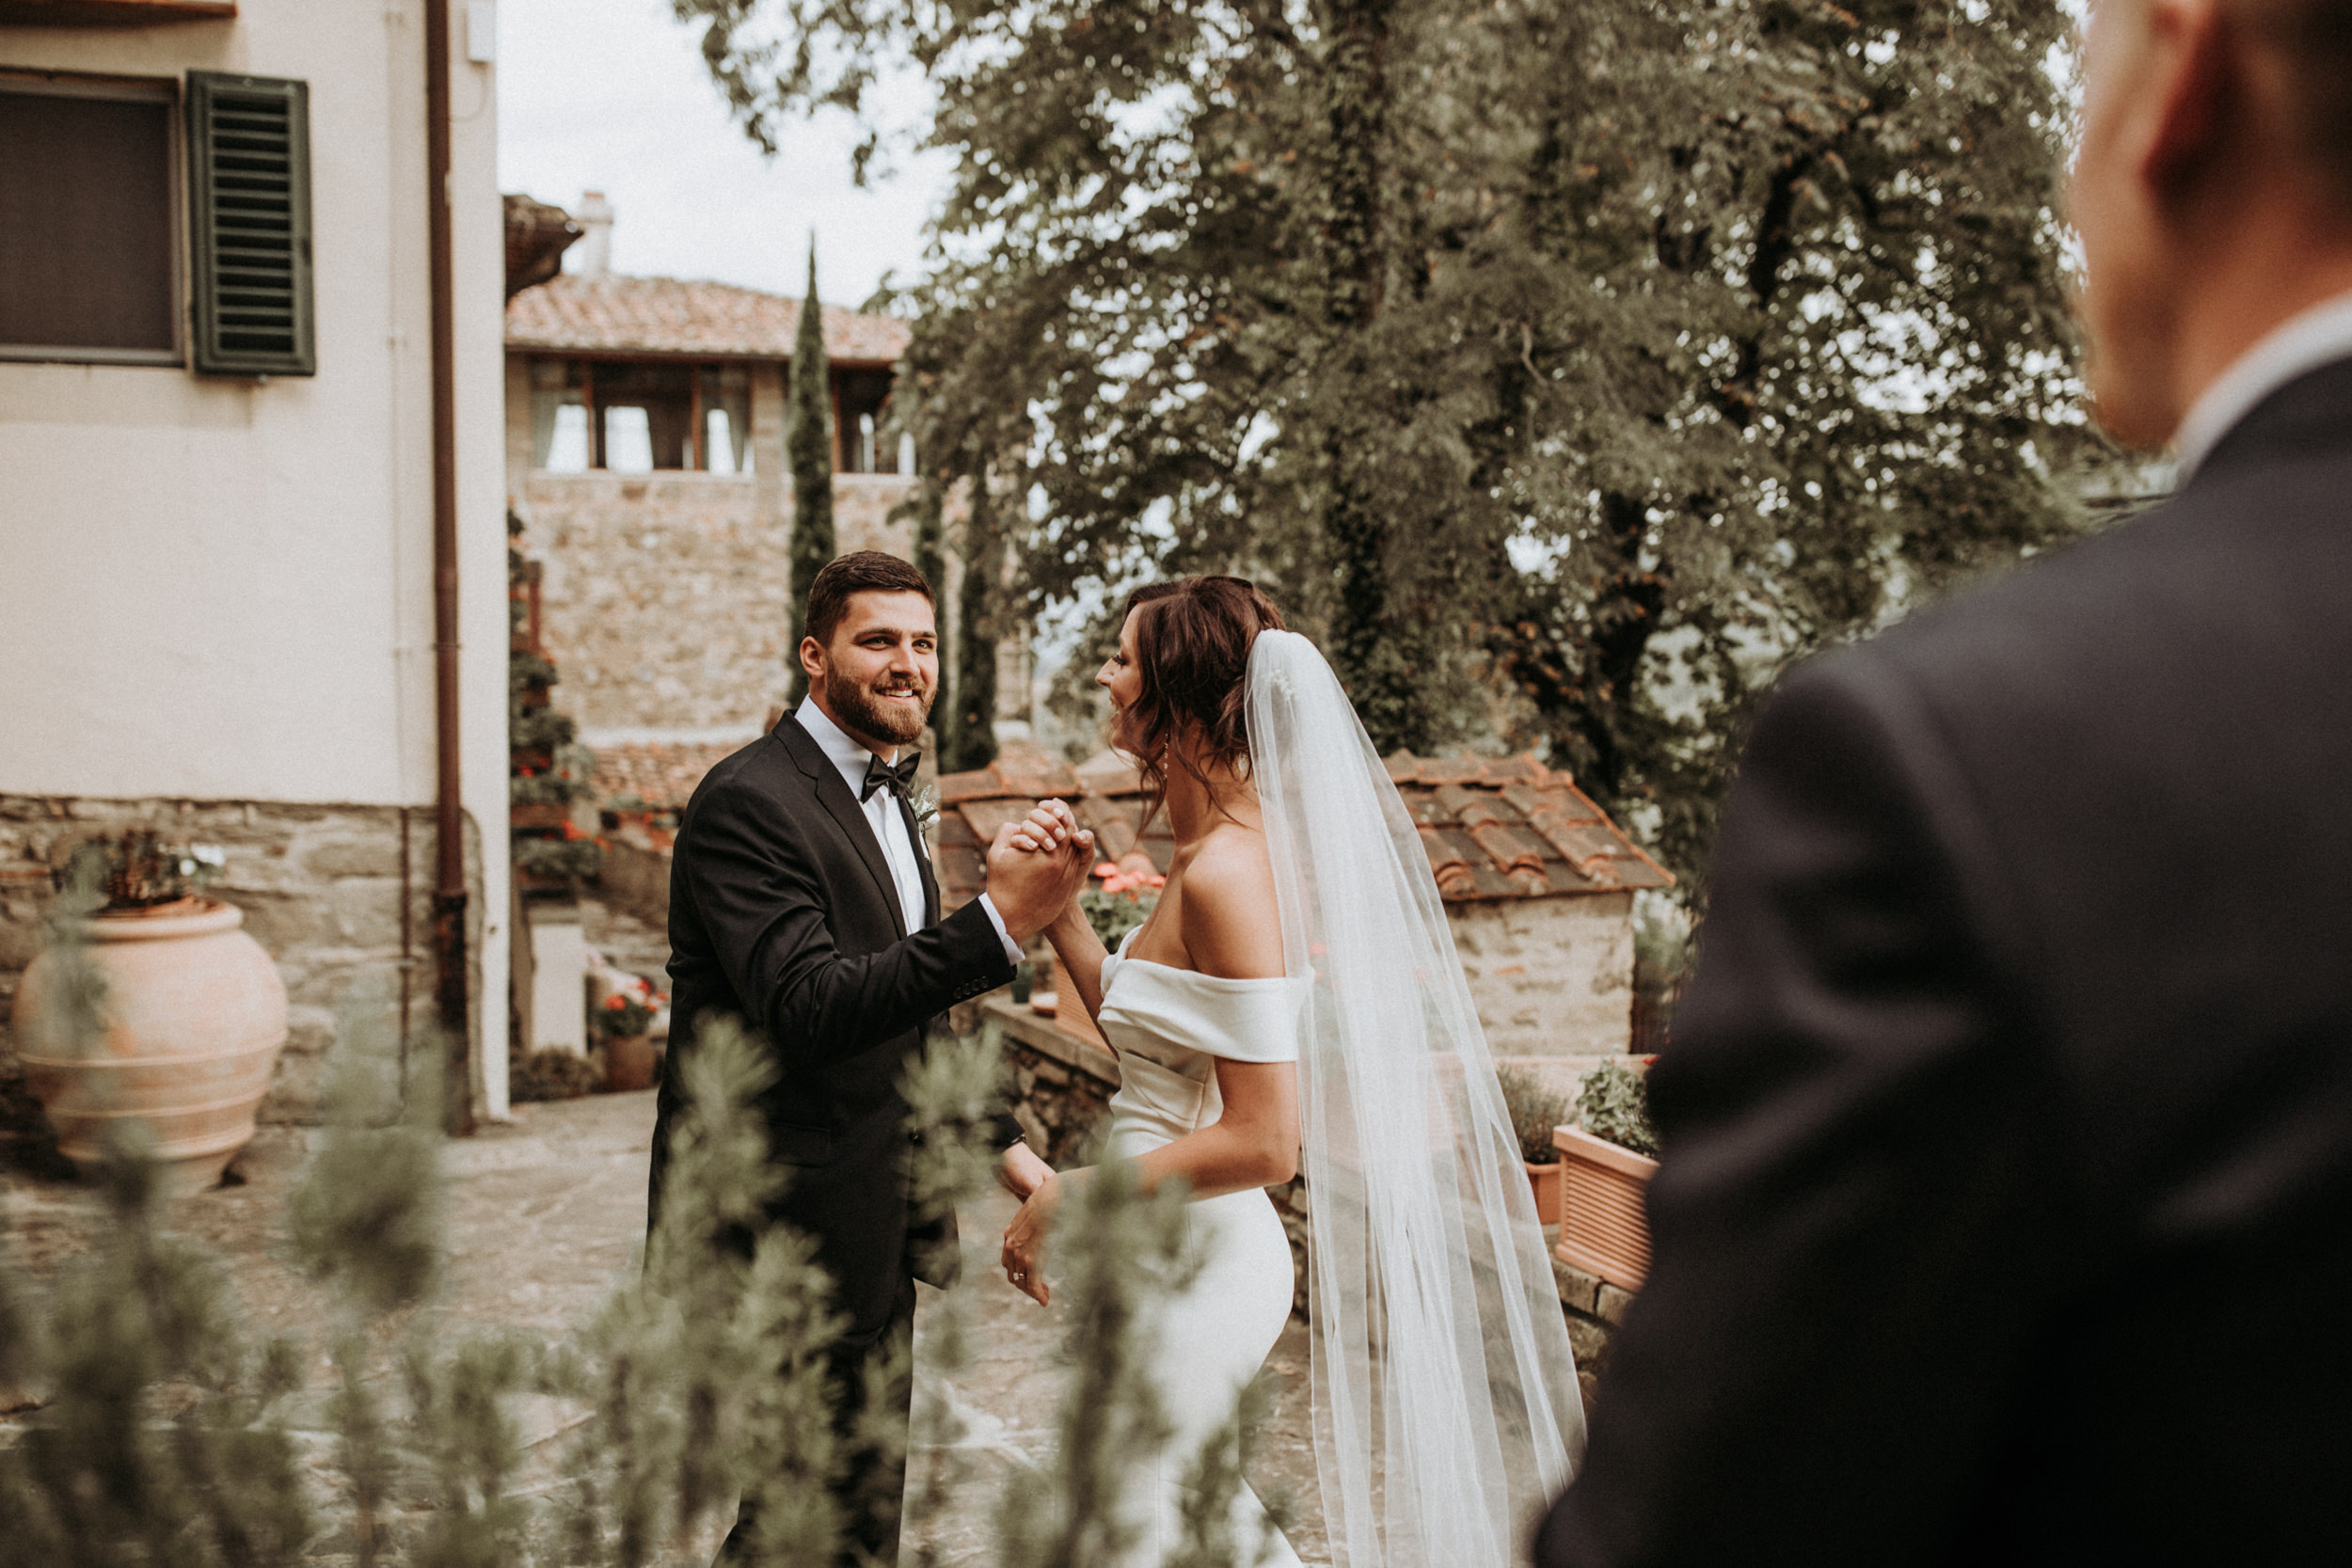 dm_photography_KW_Tuscanyweddingday_250